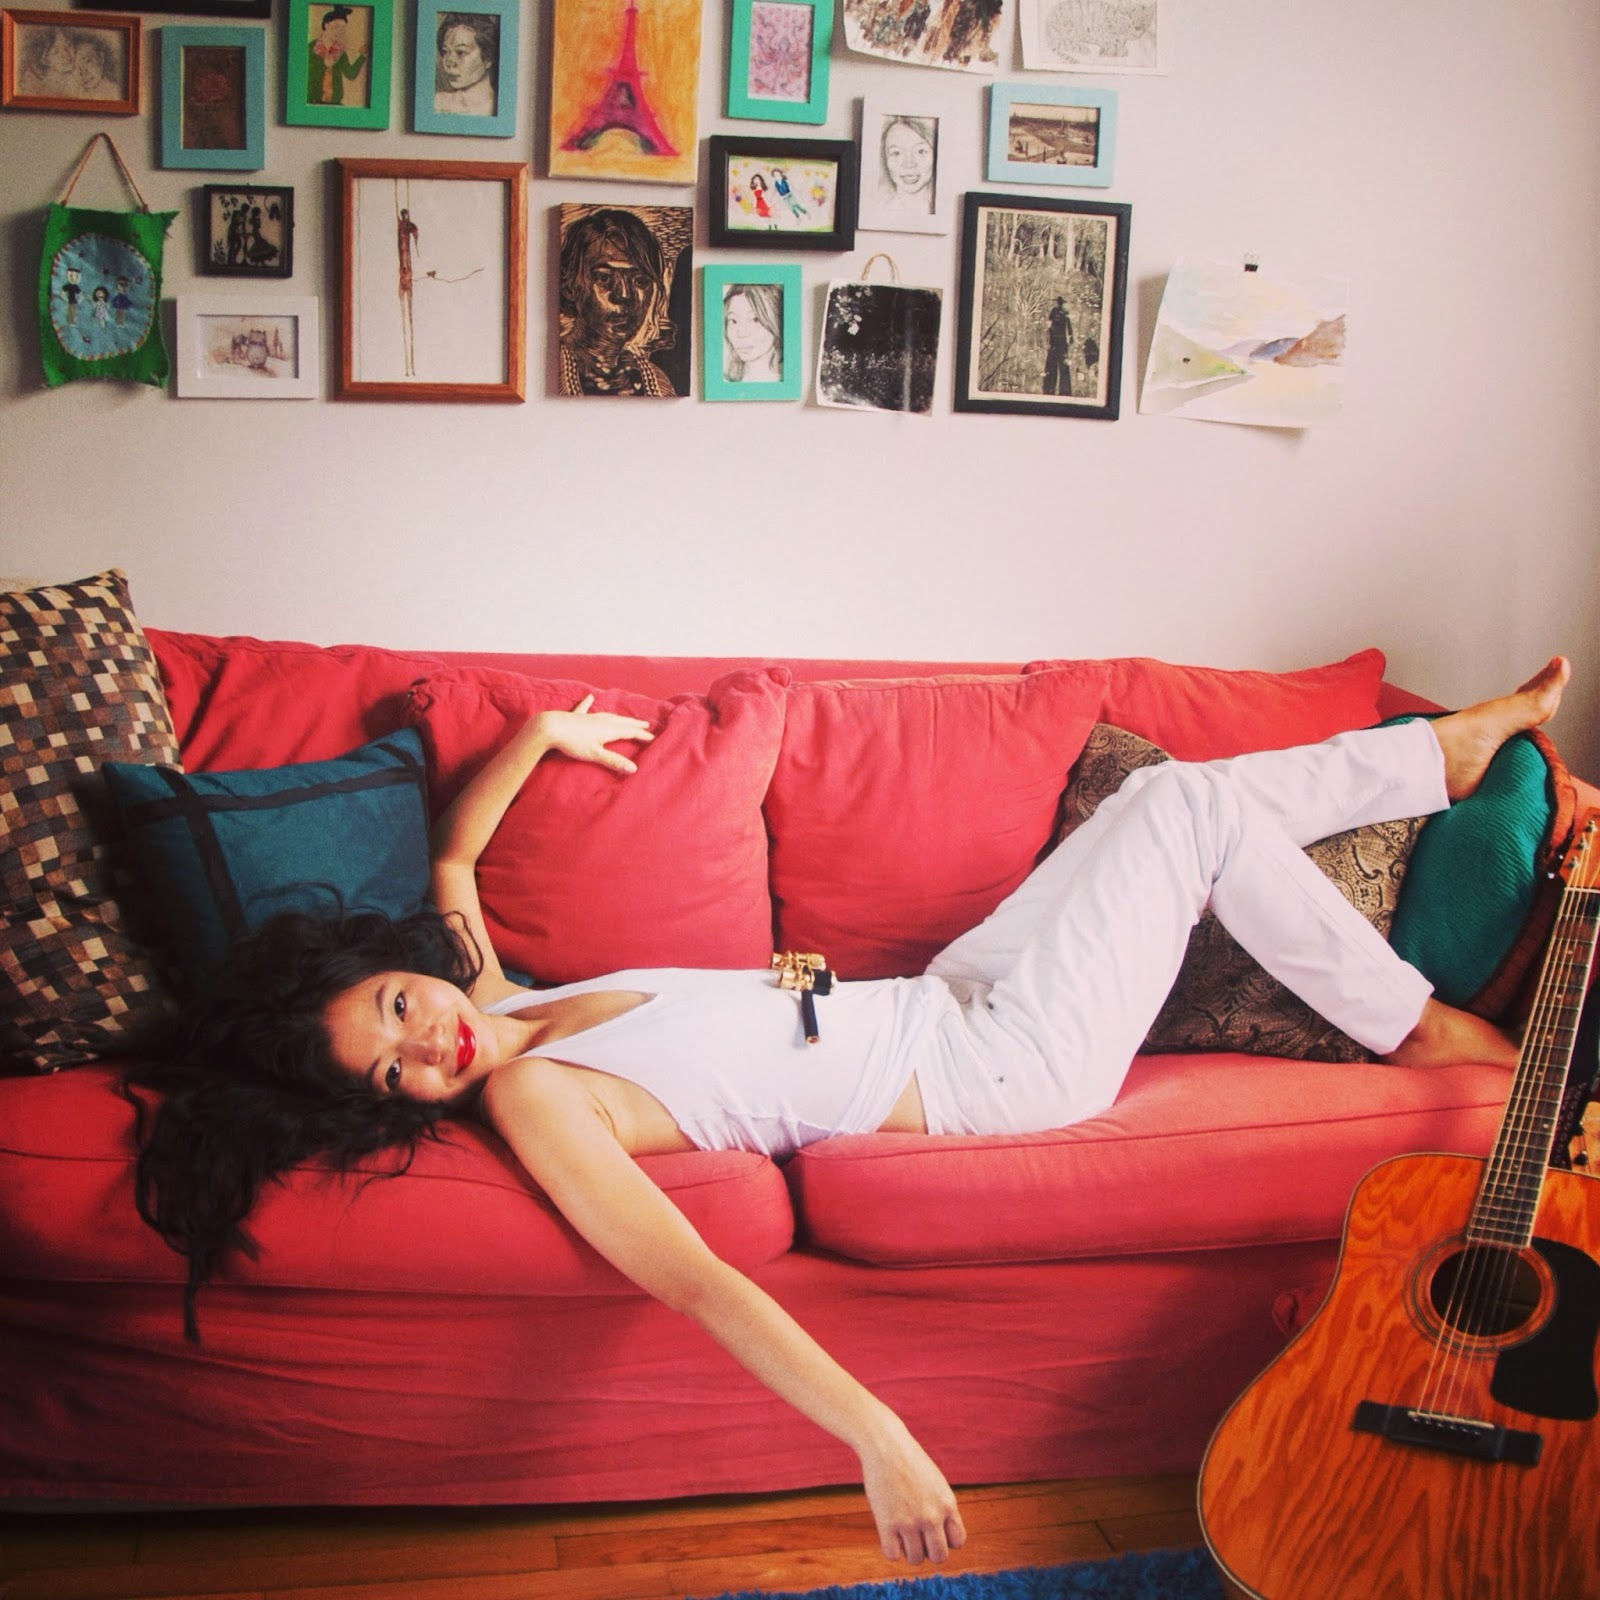 red lips white pants white tank red couch guitar opera glasses cushions artwork